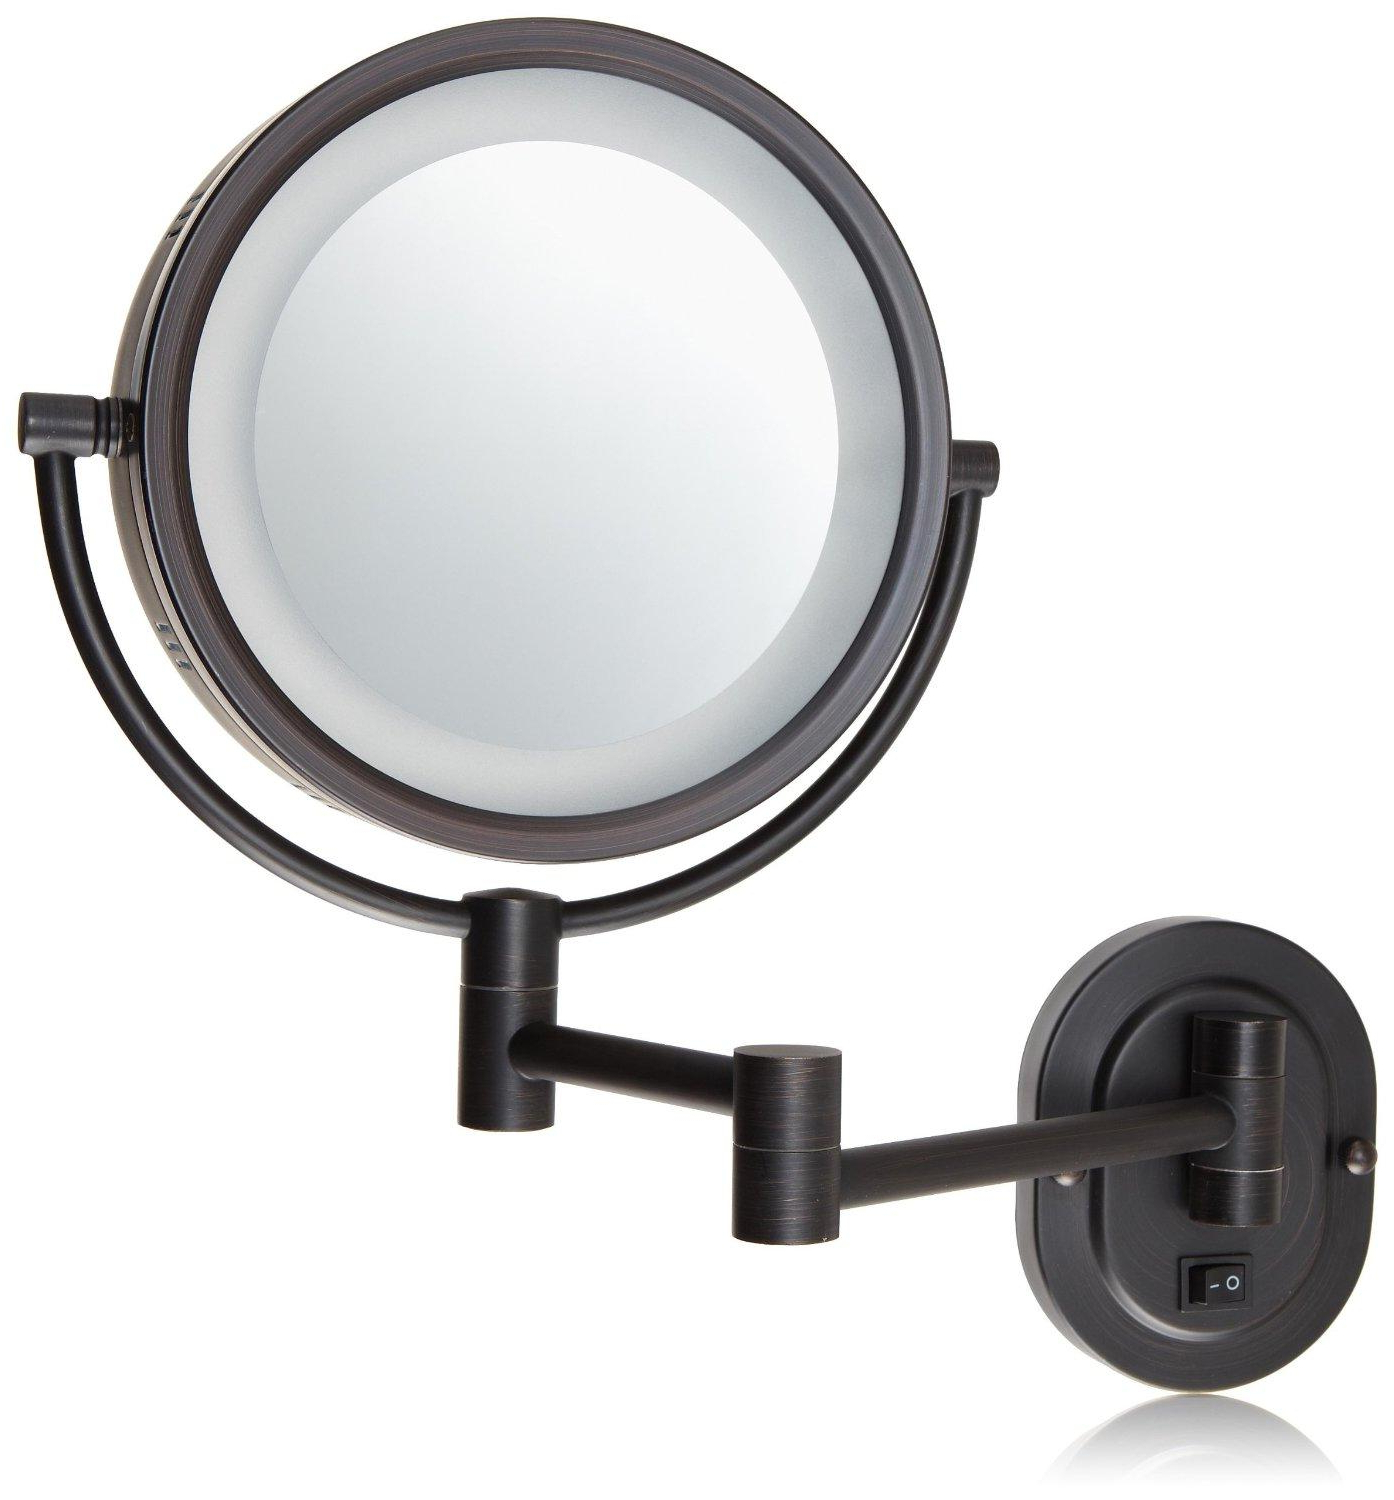 Lighted Vanity Wall Mirrors Regarding Most Up To Date Jerdon Hl65Bzd 8 Inch Lighted Direct Wire Wall Mount Makeup Mirror With 5X Magnification, Bronze Finish (Gallery 6 of 20)